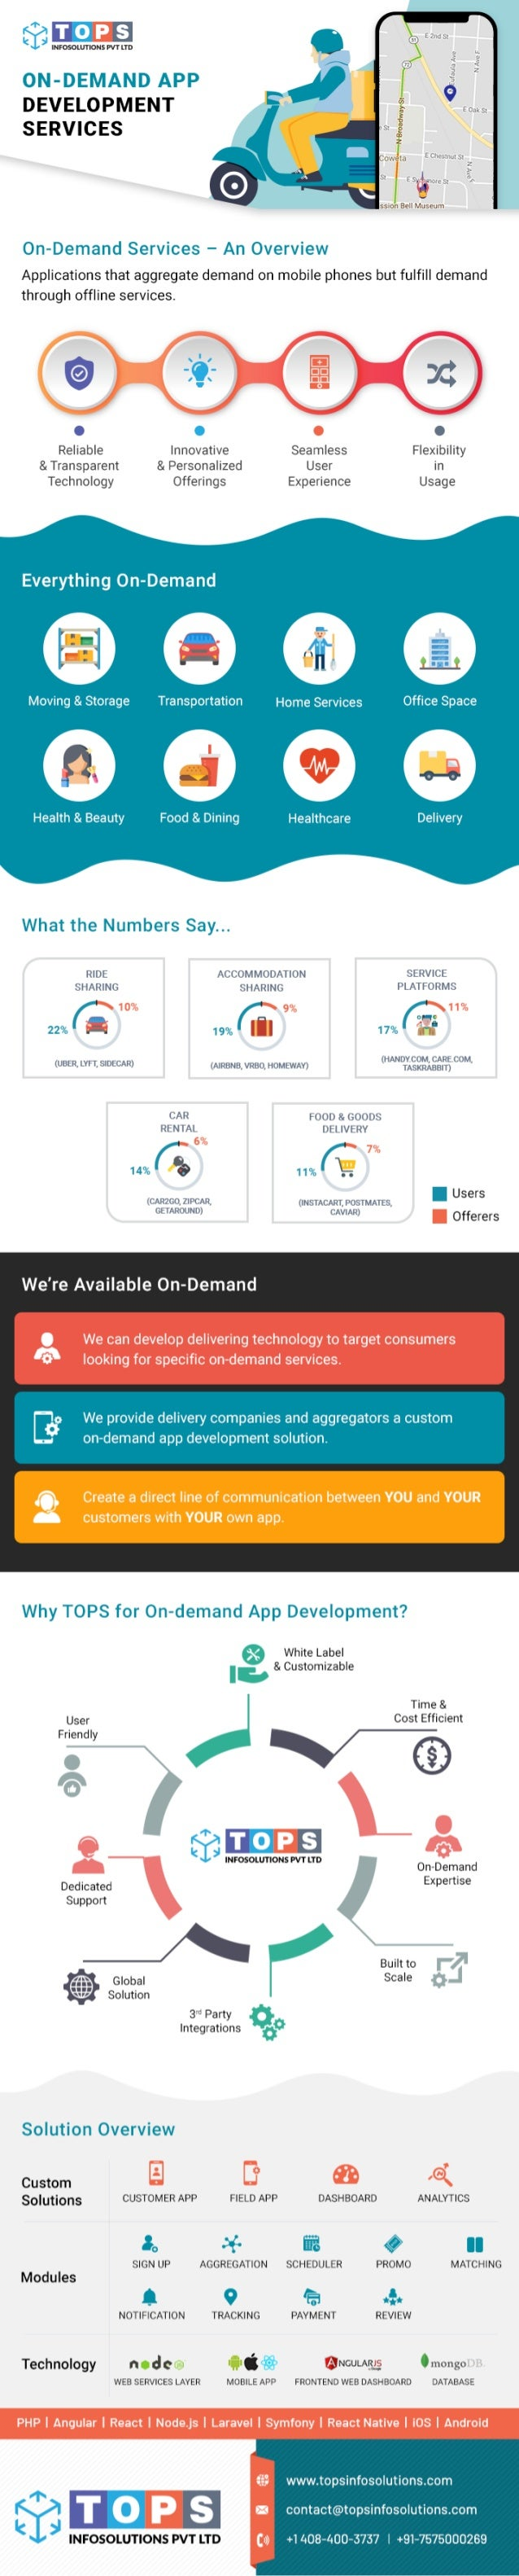 On-Demand Mobile Apps Deliver the Fastest Services to Your Customers